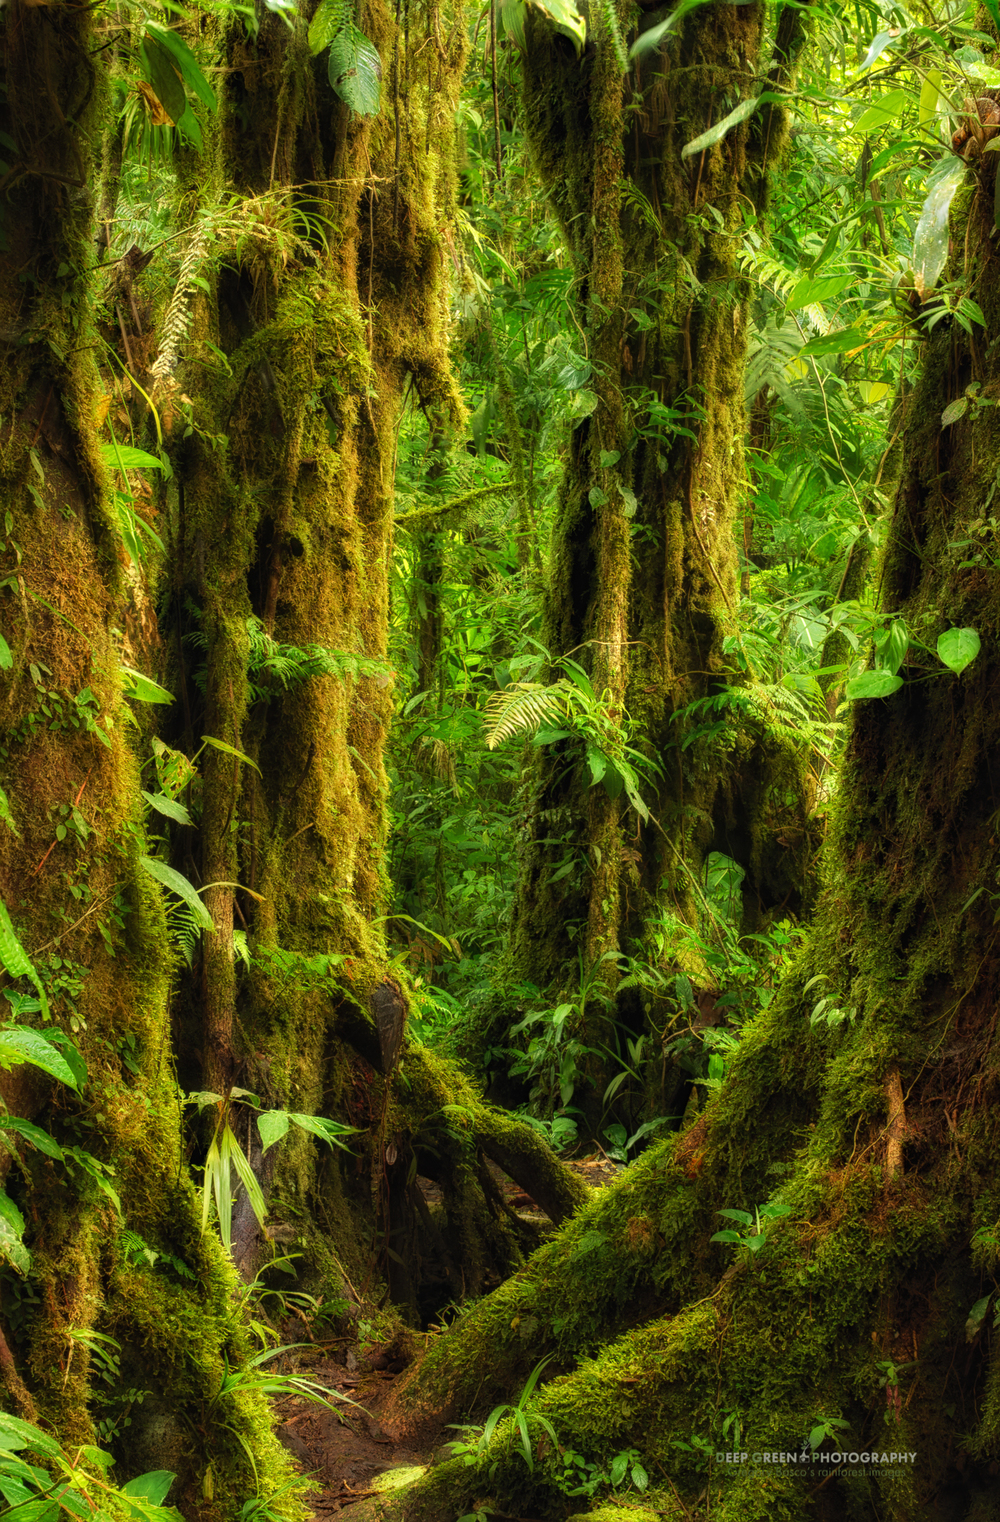 moss-covered oak trees in the Monteverde Cloud Forest Preserve